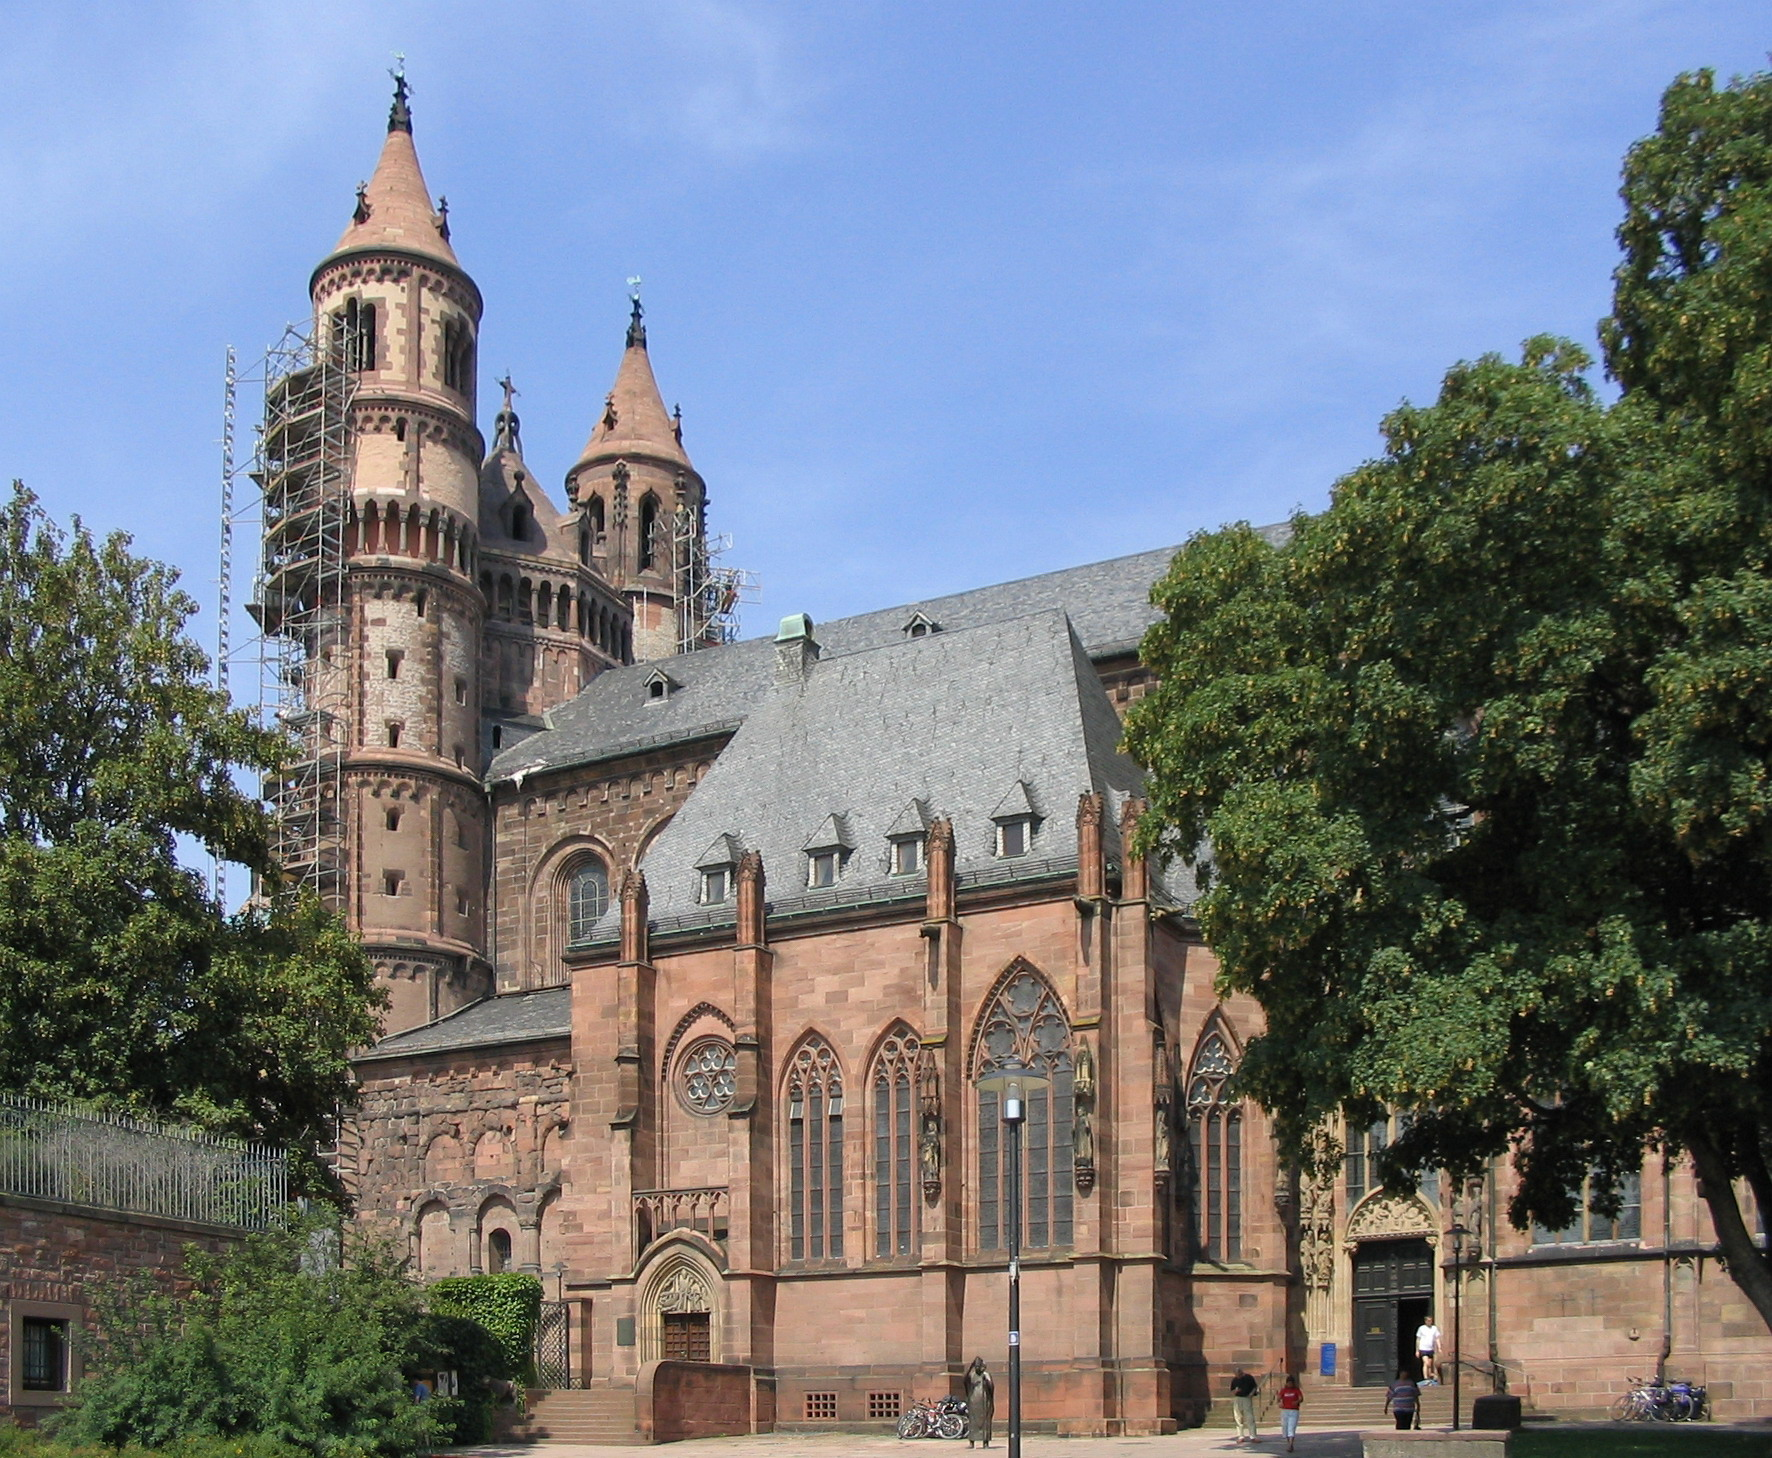 Worms, Germany - Simple English Wikipedia, the free encyclopedia